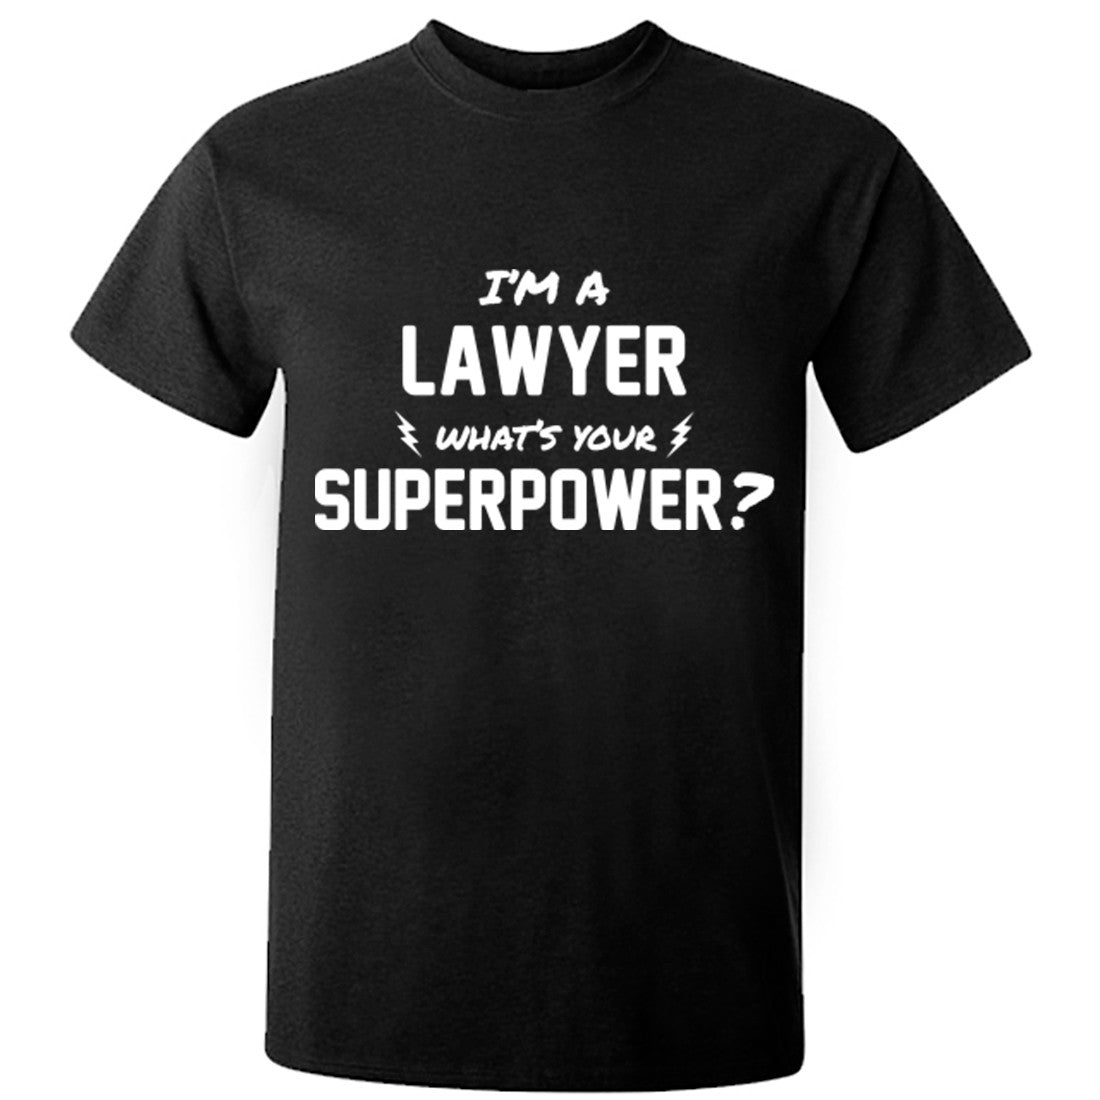 I'm A Lawyer What's Your Superpower? Unisex Fit T-Shirt K0730 - Illustrated Identity Ltd.